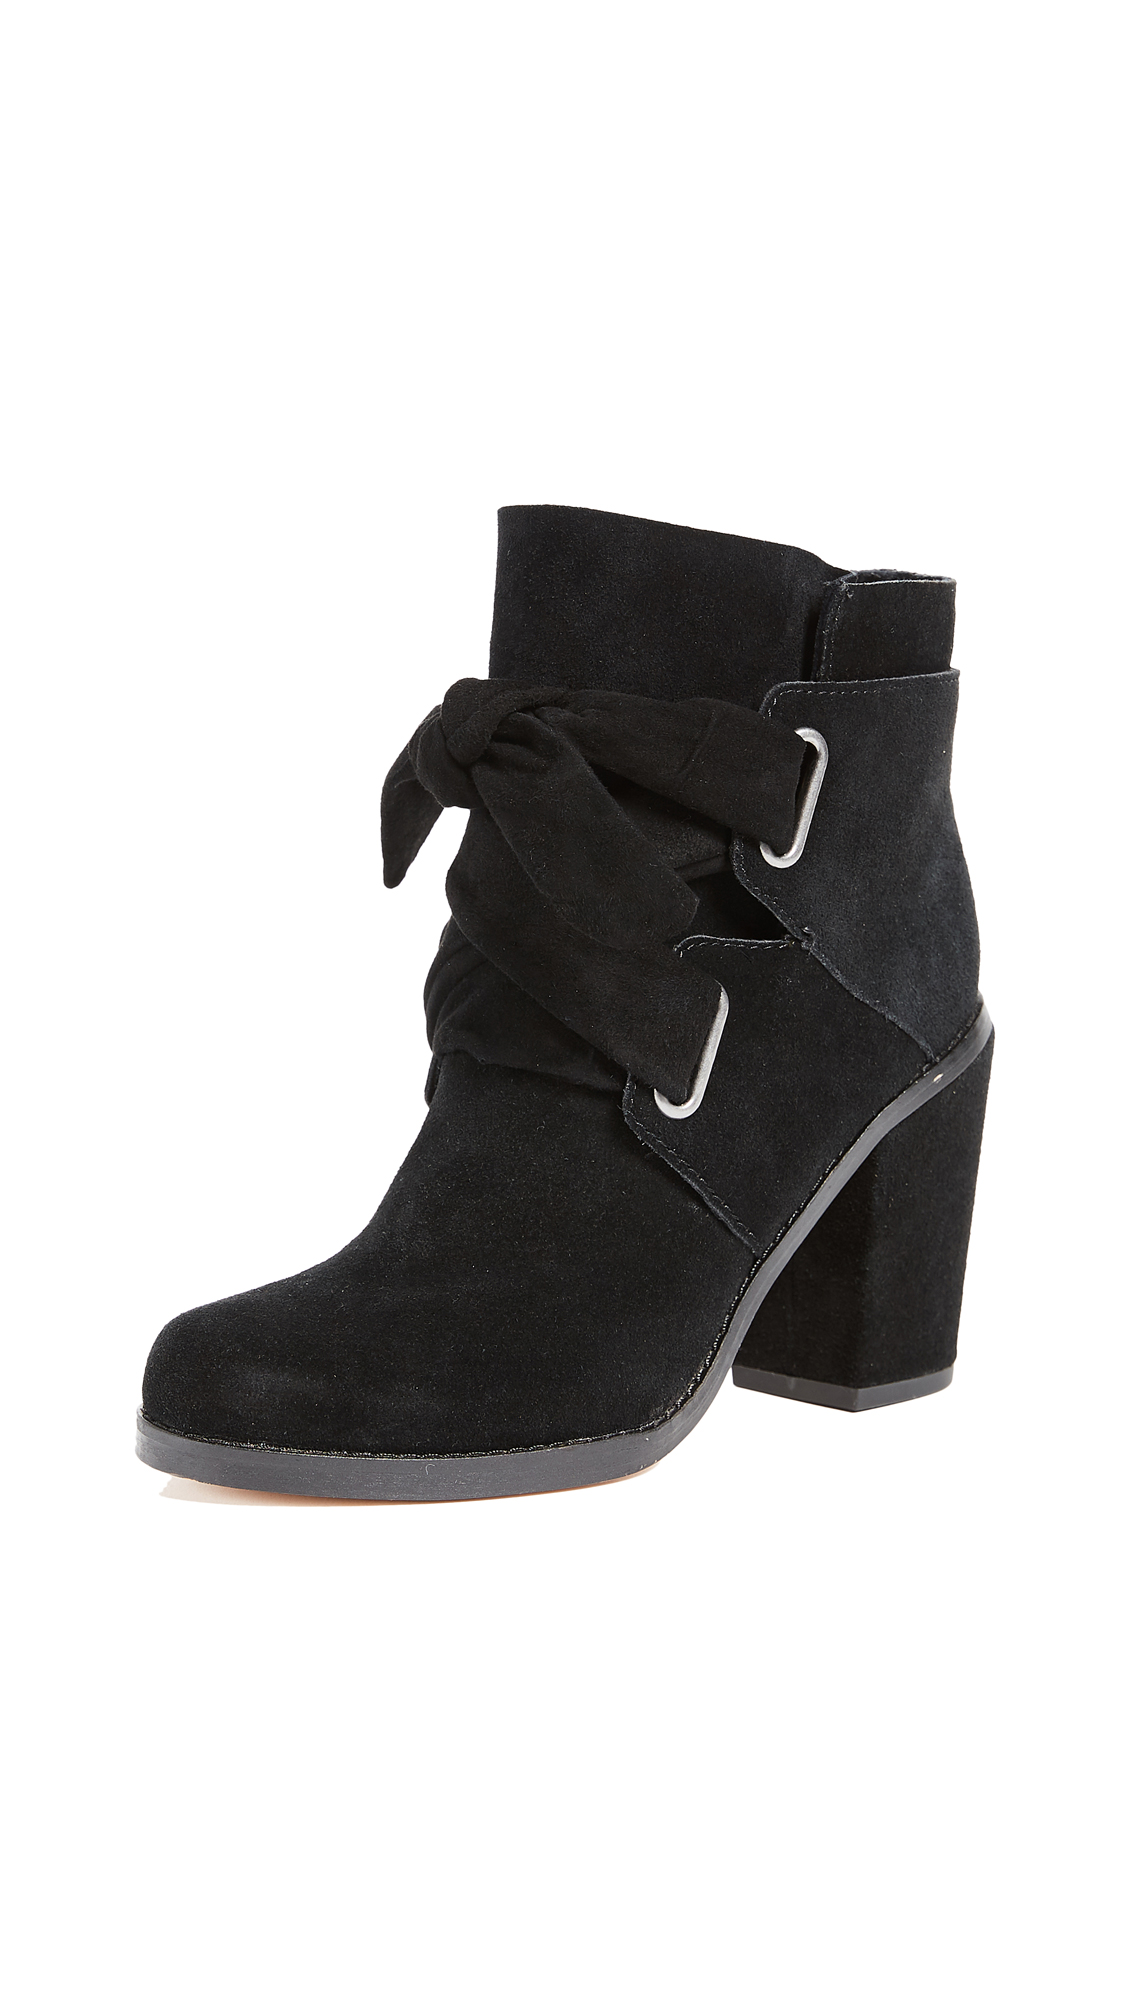 Splendid Rhiannon Tie Booties - Black